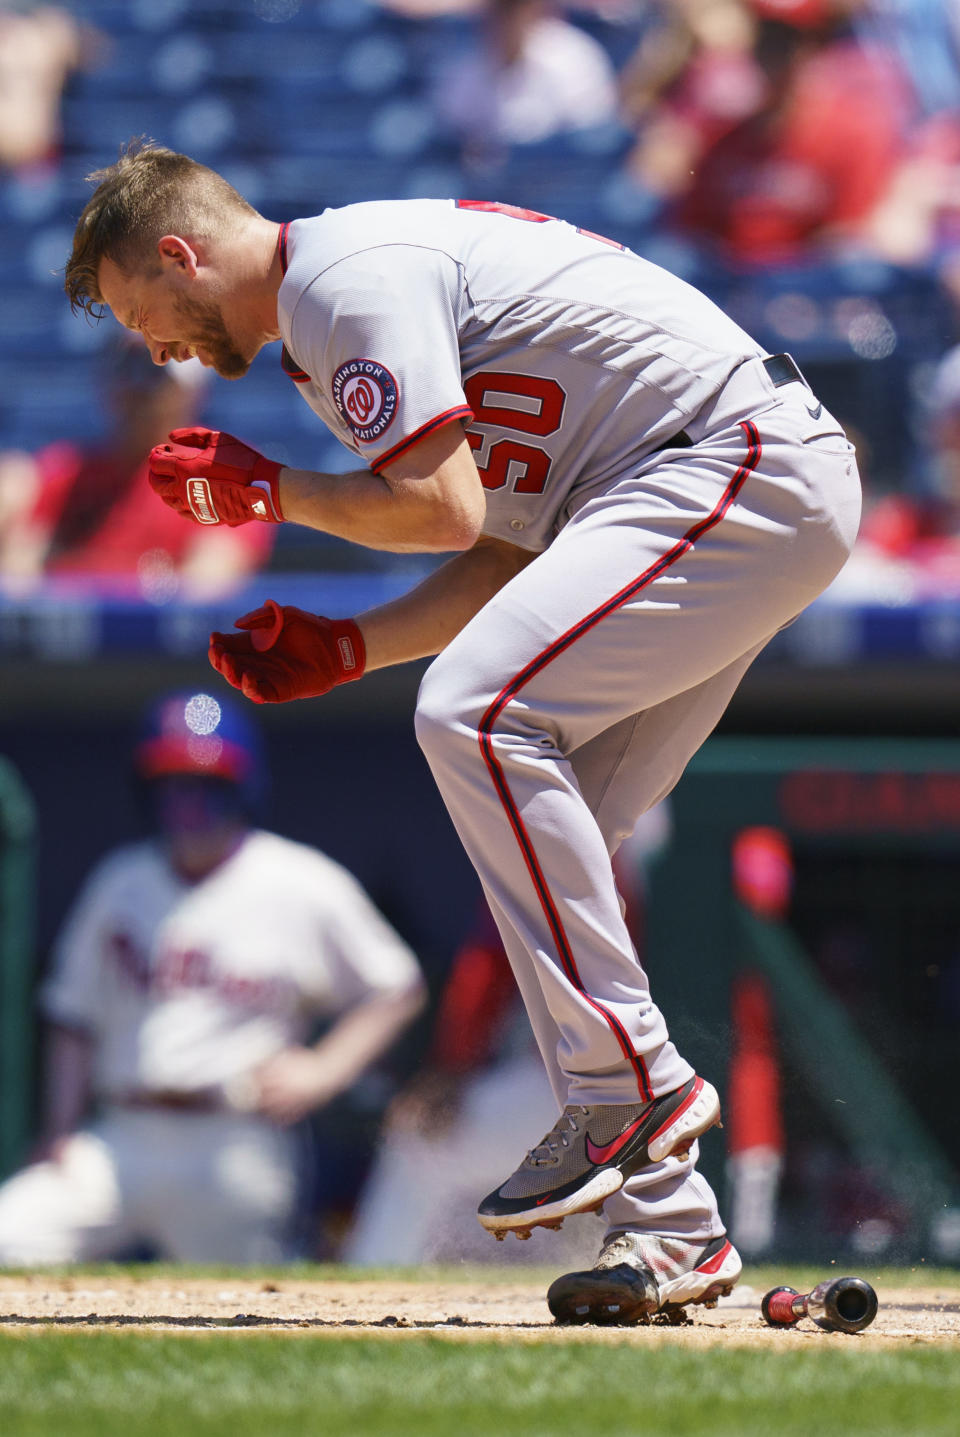 Washington Nationals' Austin Voth reacts after getting hit in the face by a pitch during the third inning of a baseball game against the Philadelphia Phillies, Sunday, June 6, 2021, in Philadelphia. (AP Photo/Chris Szagola)